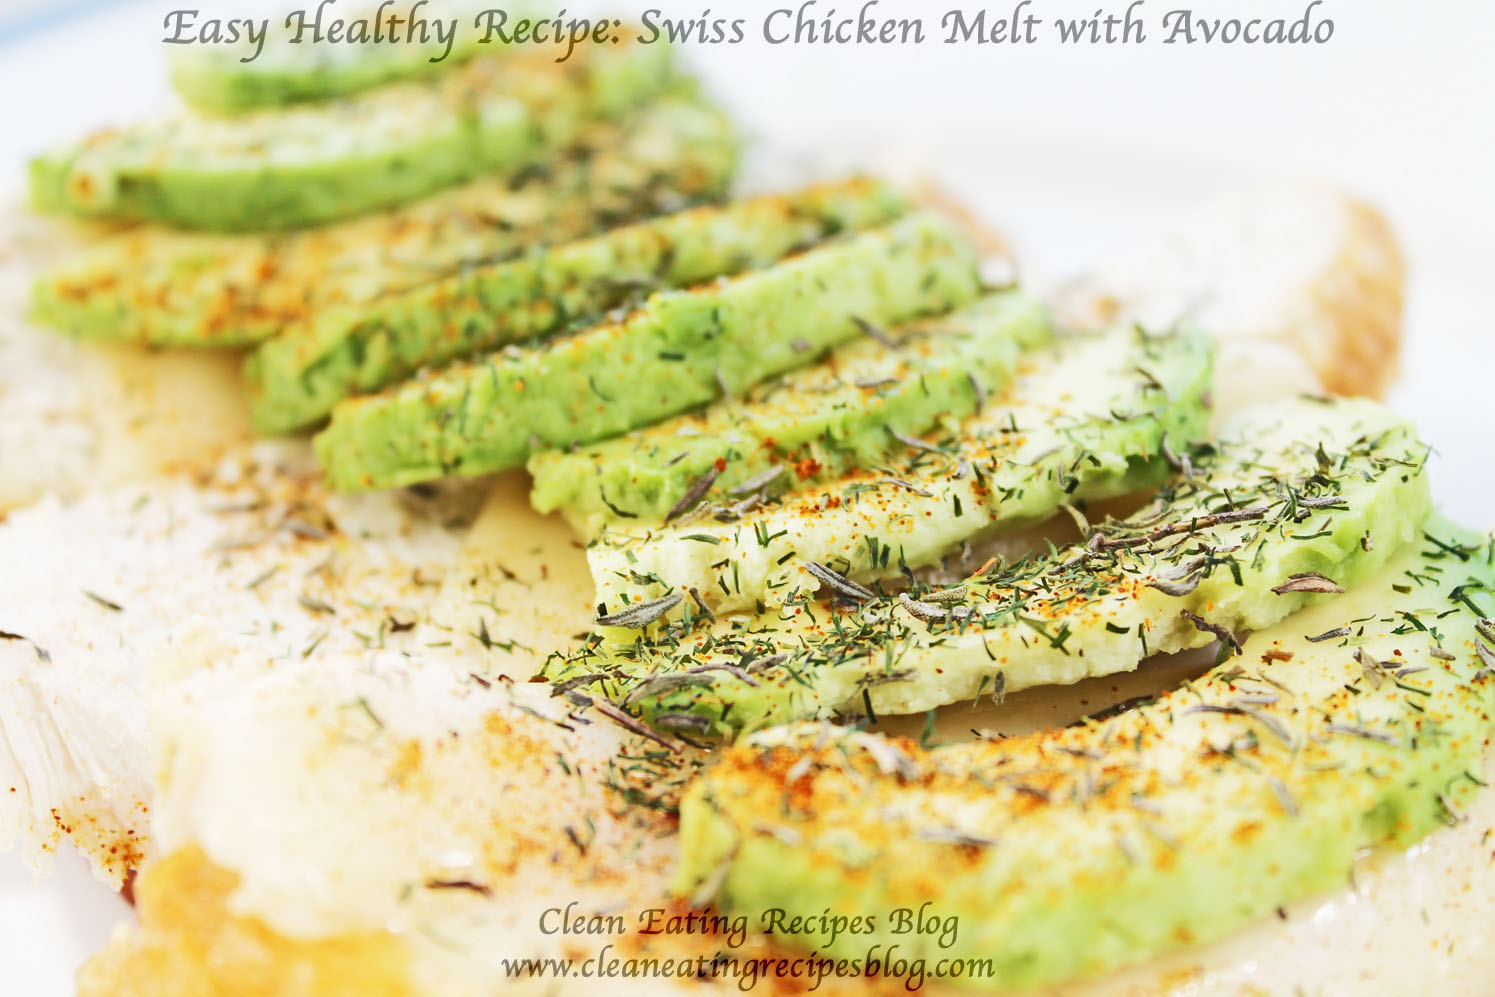 ... healthy recipe for Clean Eating Lunch: Swiss Chicken Melt with Avocado